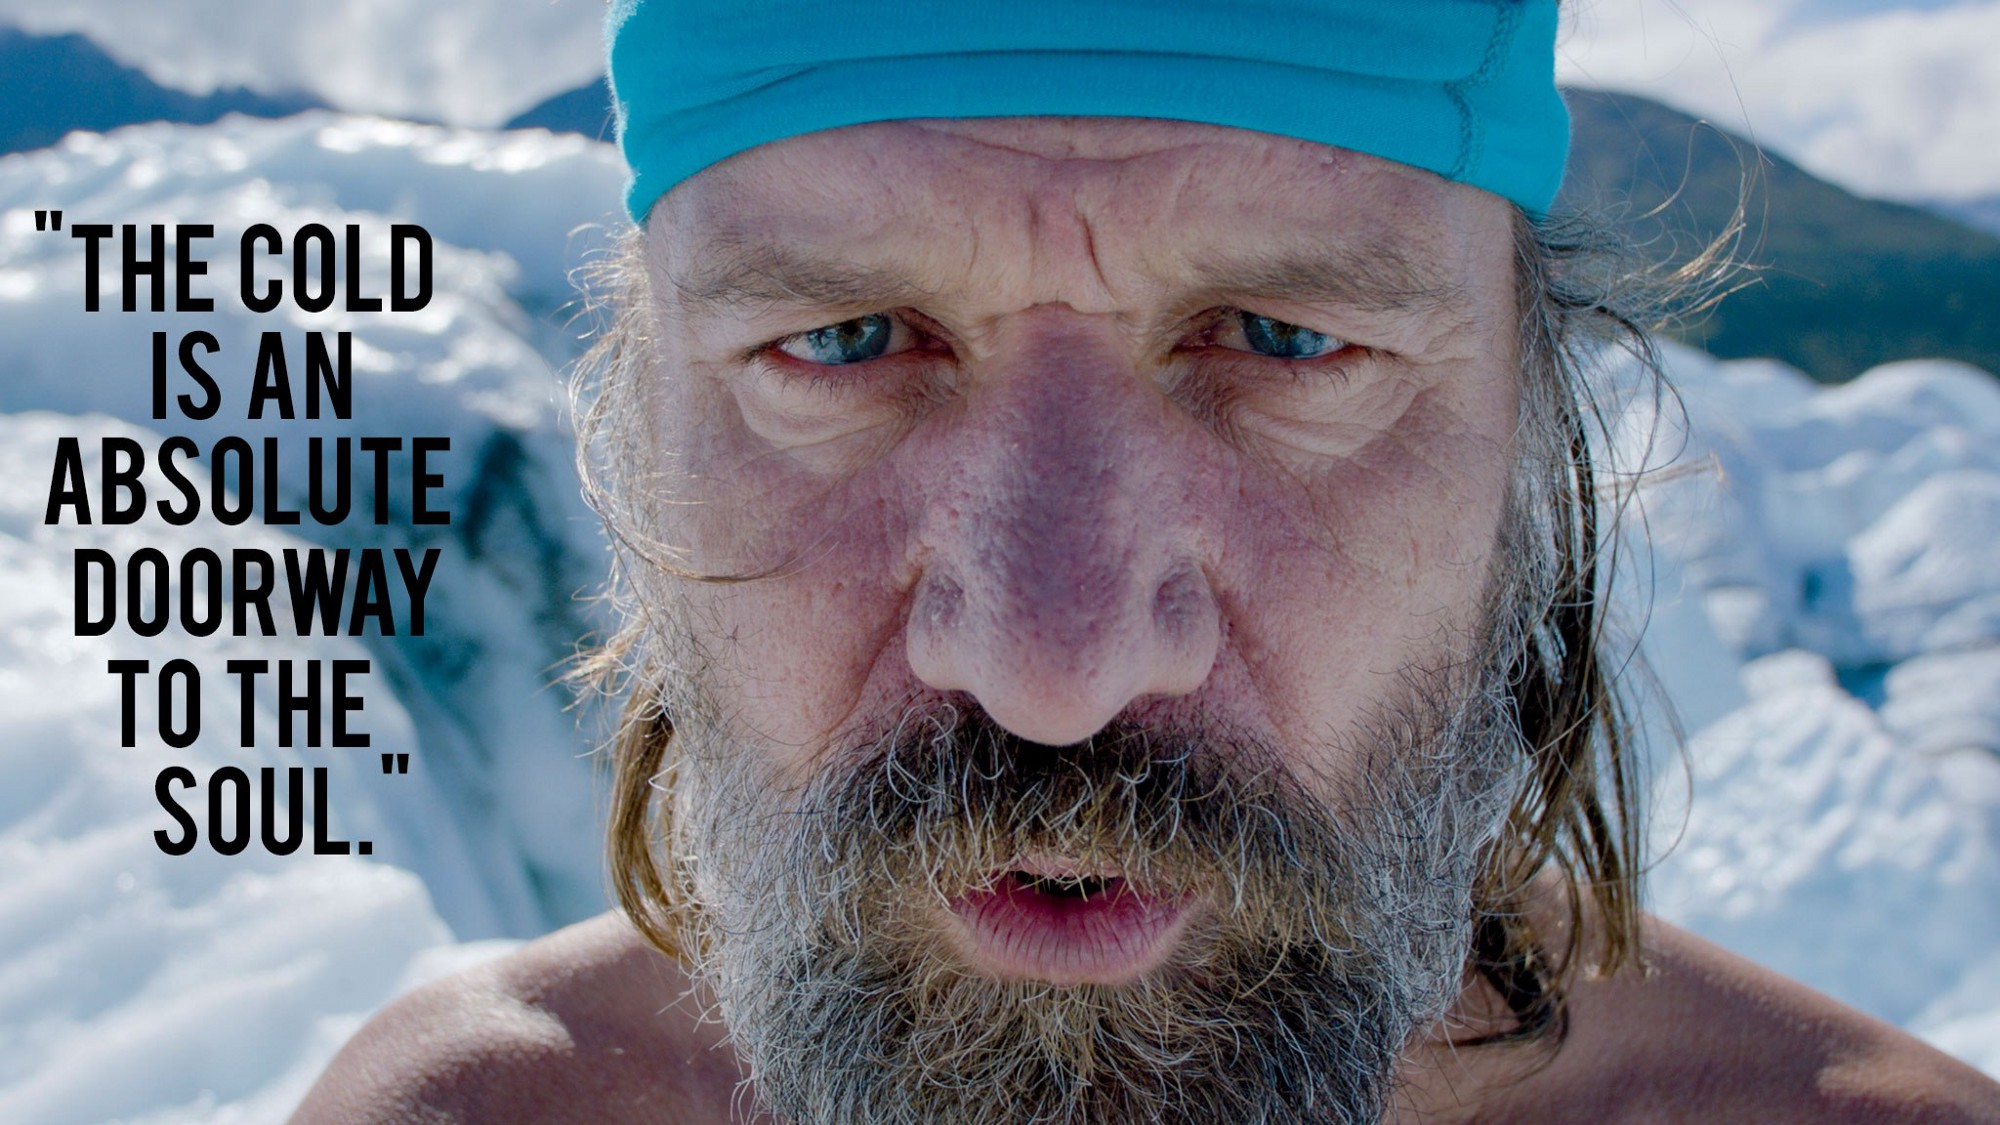 Wim Hof Method, Wim Hof, The Ice Man, Breathing